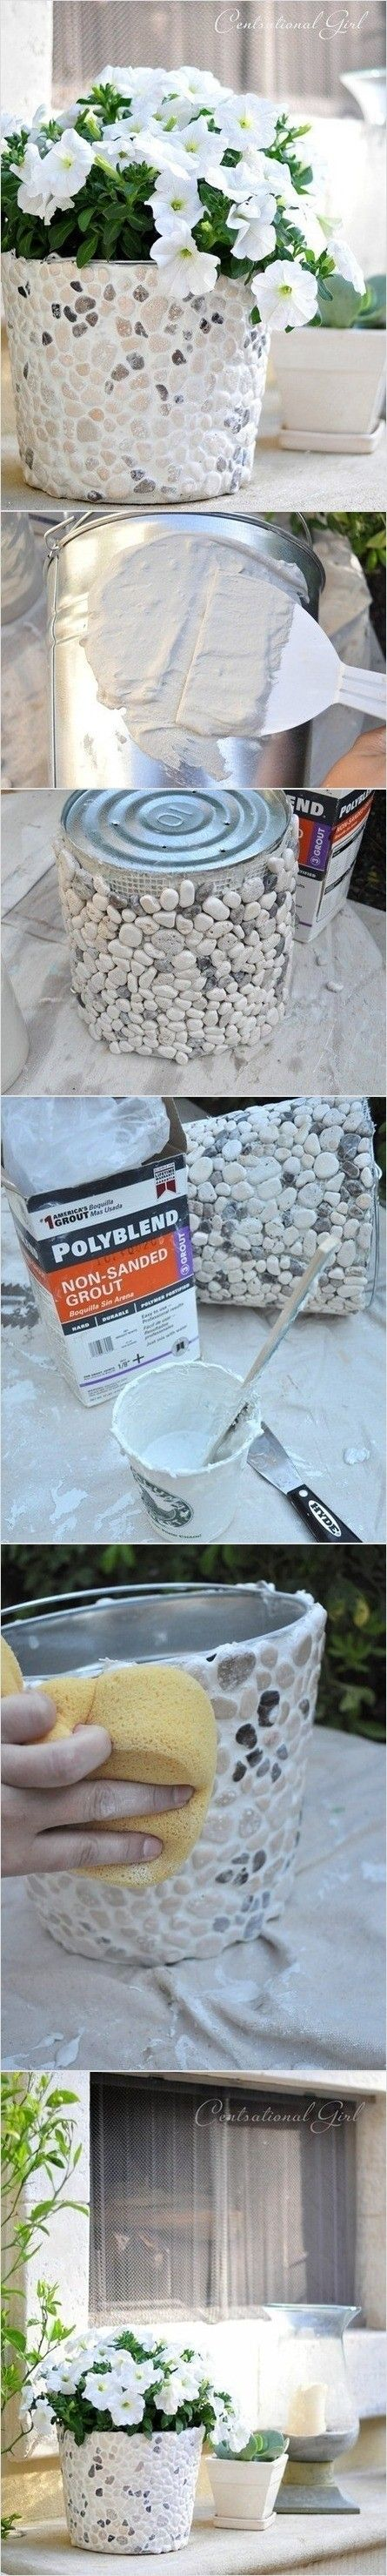 How to make your own stone flower pot | World In Green